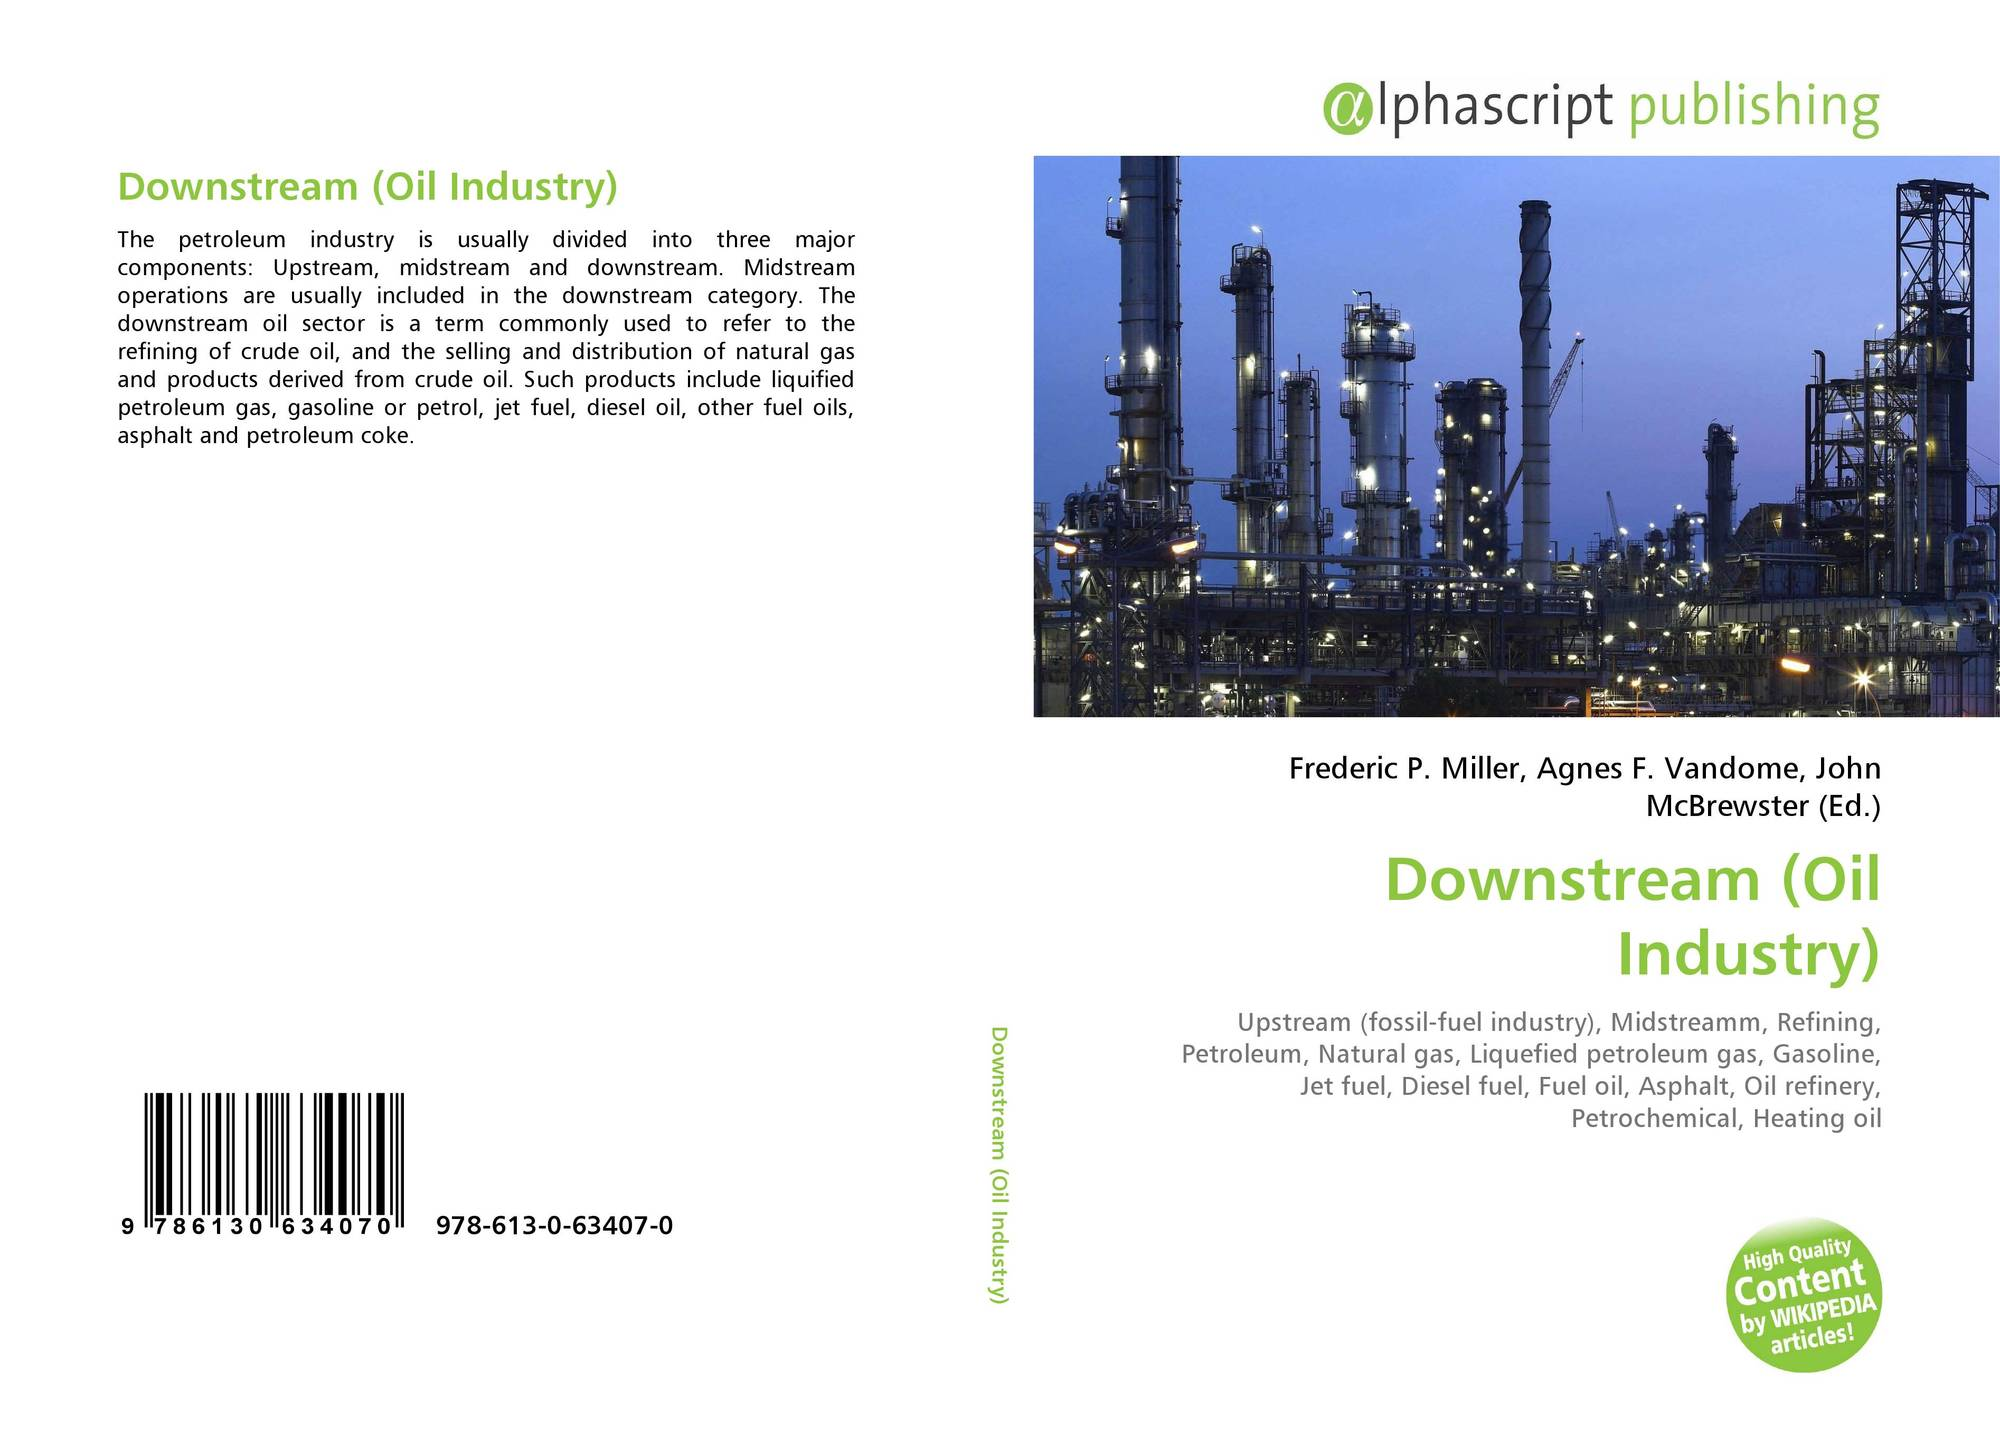 Downstream (Oil Industry), 978-613-0-63407-0, 6130634072 ,97